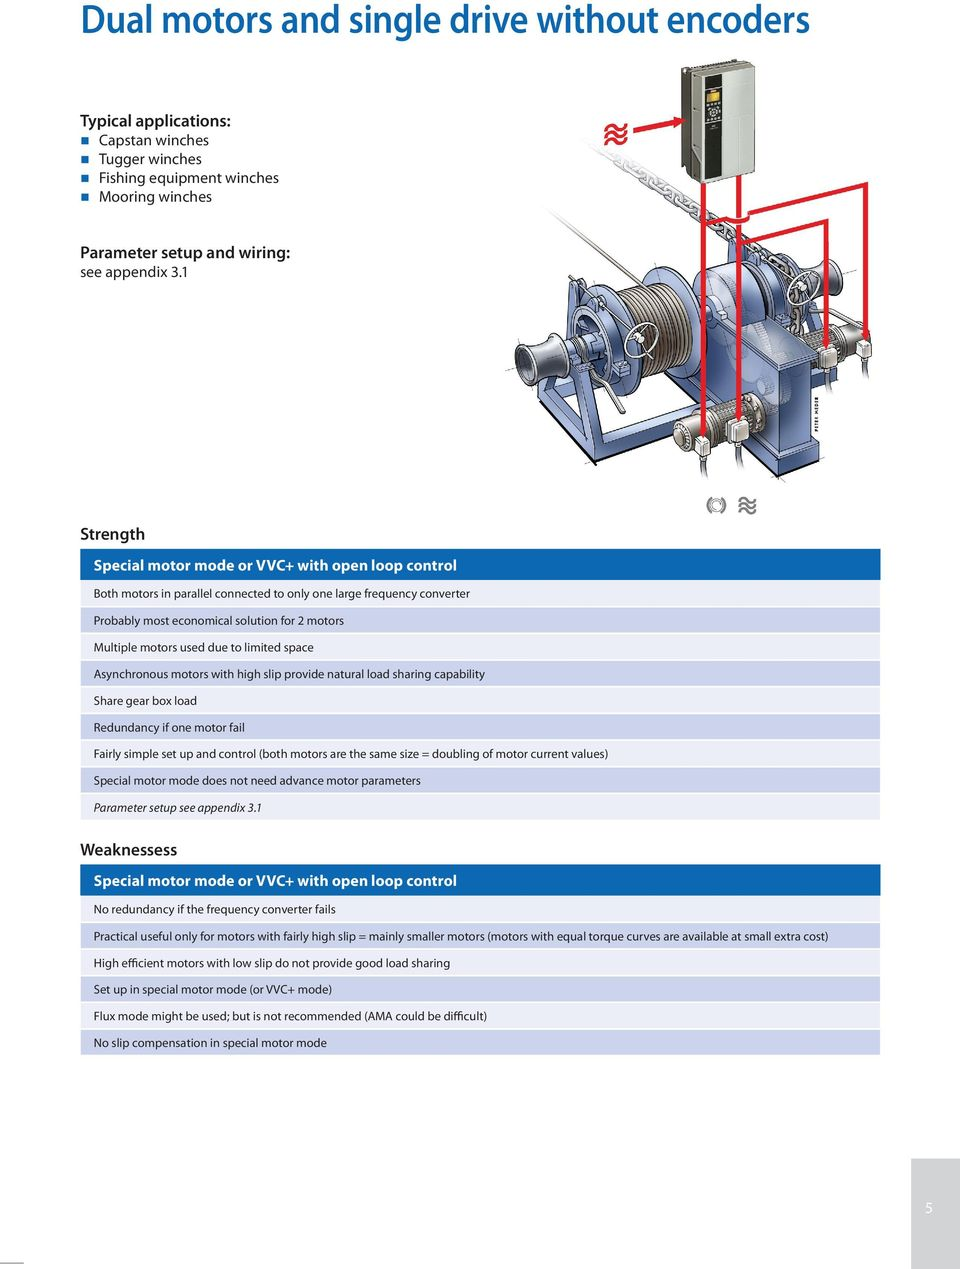 Vlt Automationdrive For Marine Winch Applications Pdf Multiple Motor Control Wiring Diagram Used Due To Limited Space Asynchronous Motors With High Slip Provide Natural Load Sharing Capability Share